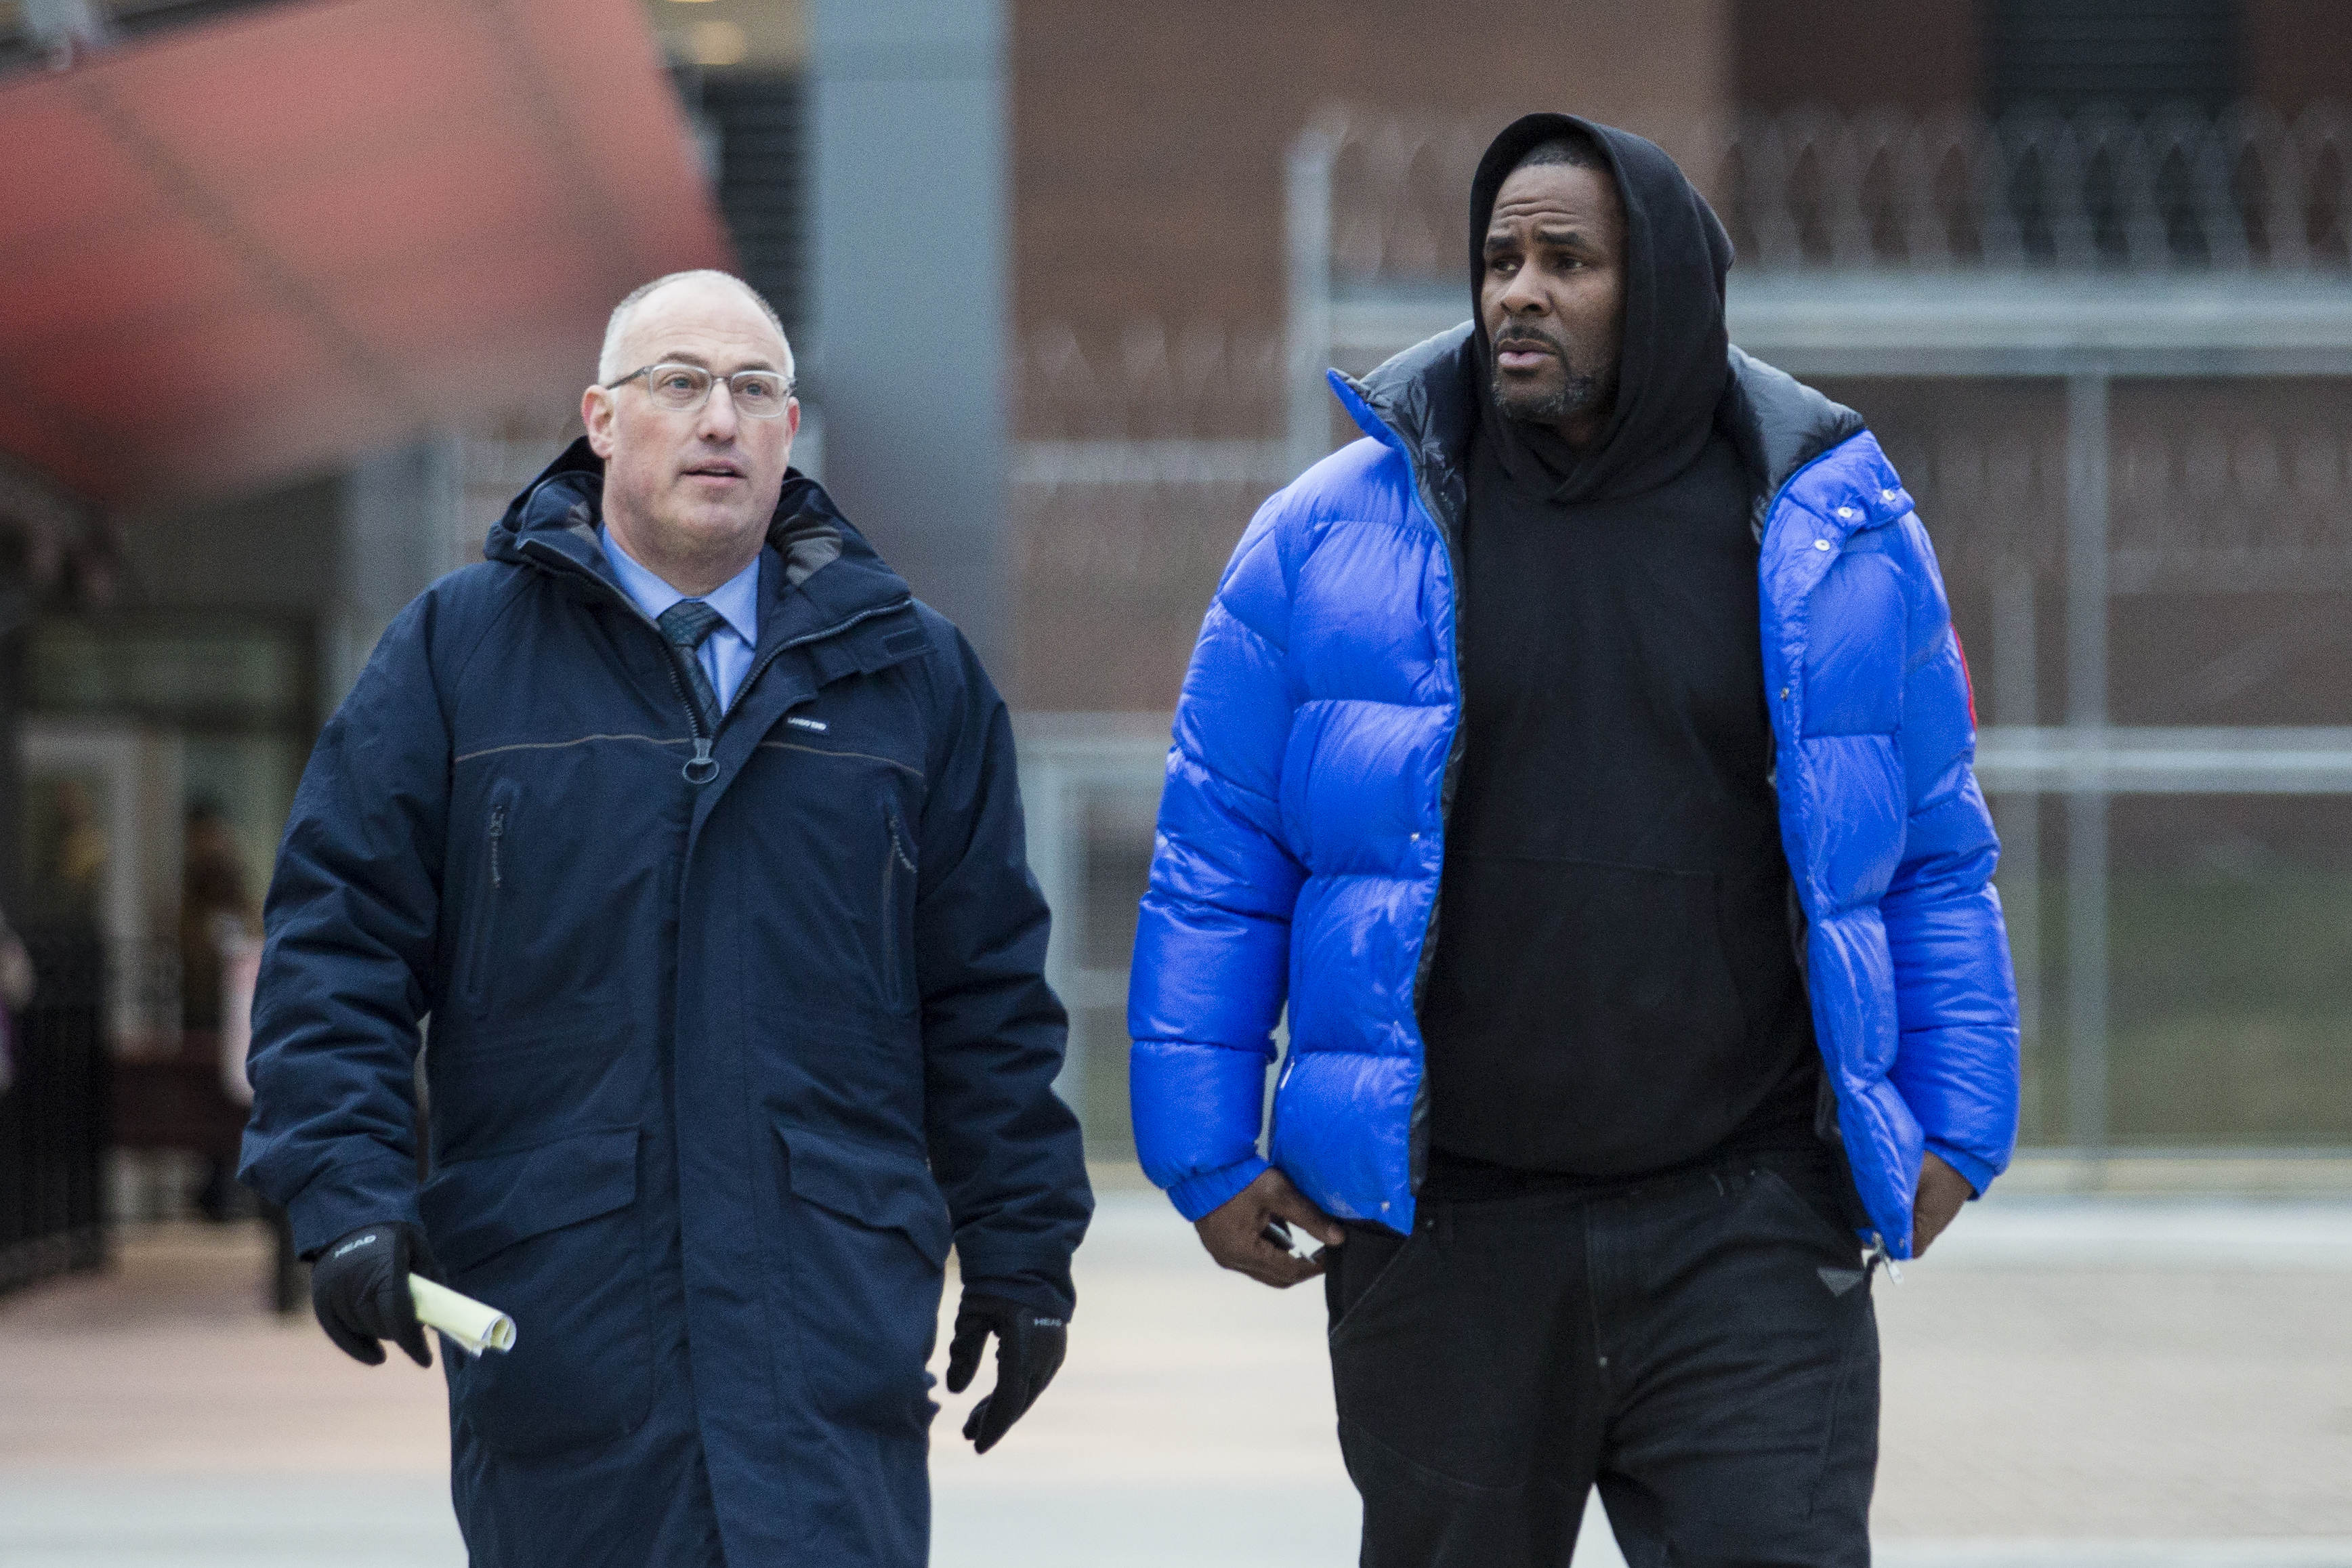 R. Kelly walks out of Cook County Jail with his defense attorney, Steve Greenberg, after posting $100,000 bail, Monday afternoon, Feb. 25, 2019. The R&B singer has entered a not guilty plea to all 10 counts of aggravated criminal sexual abuse he faces in Cook County.